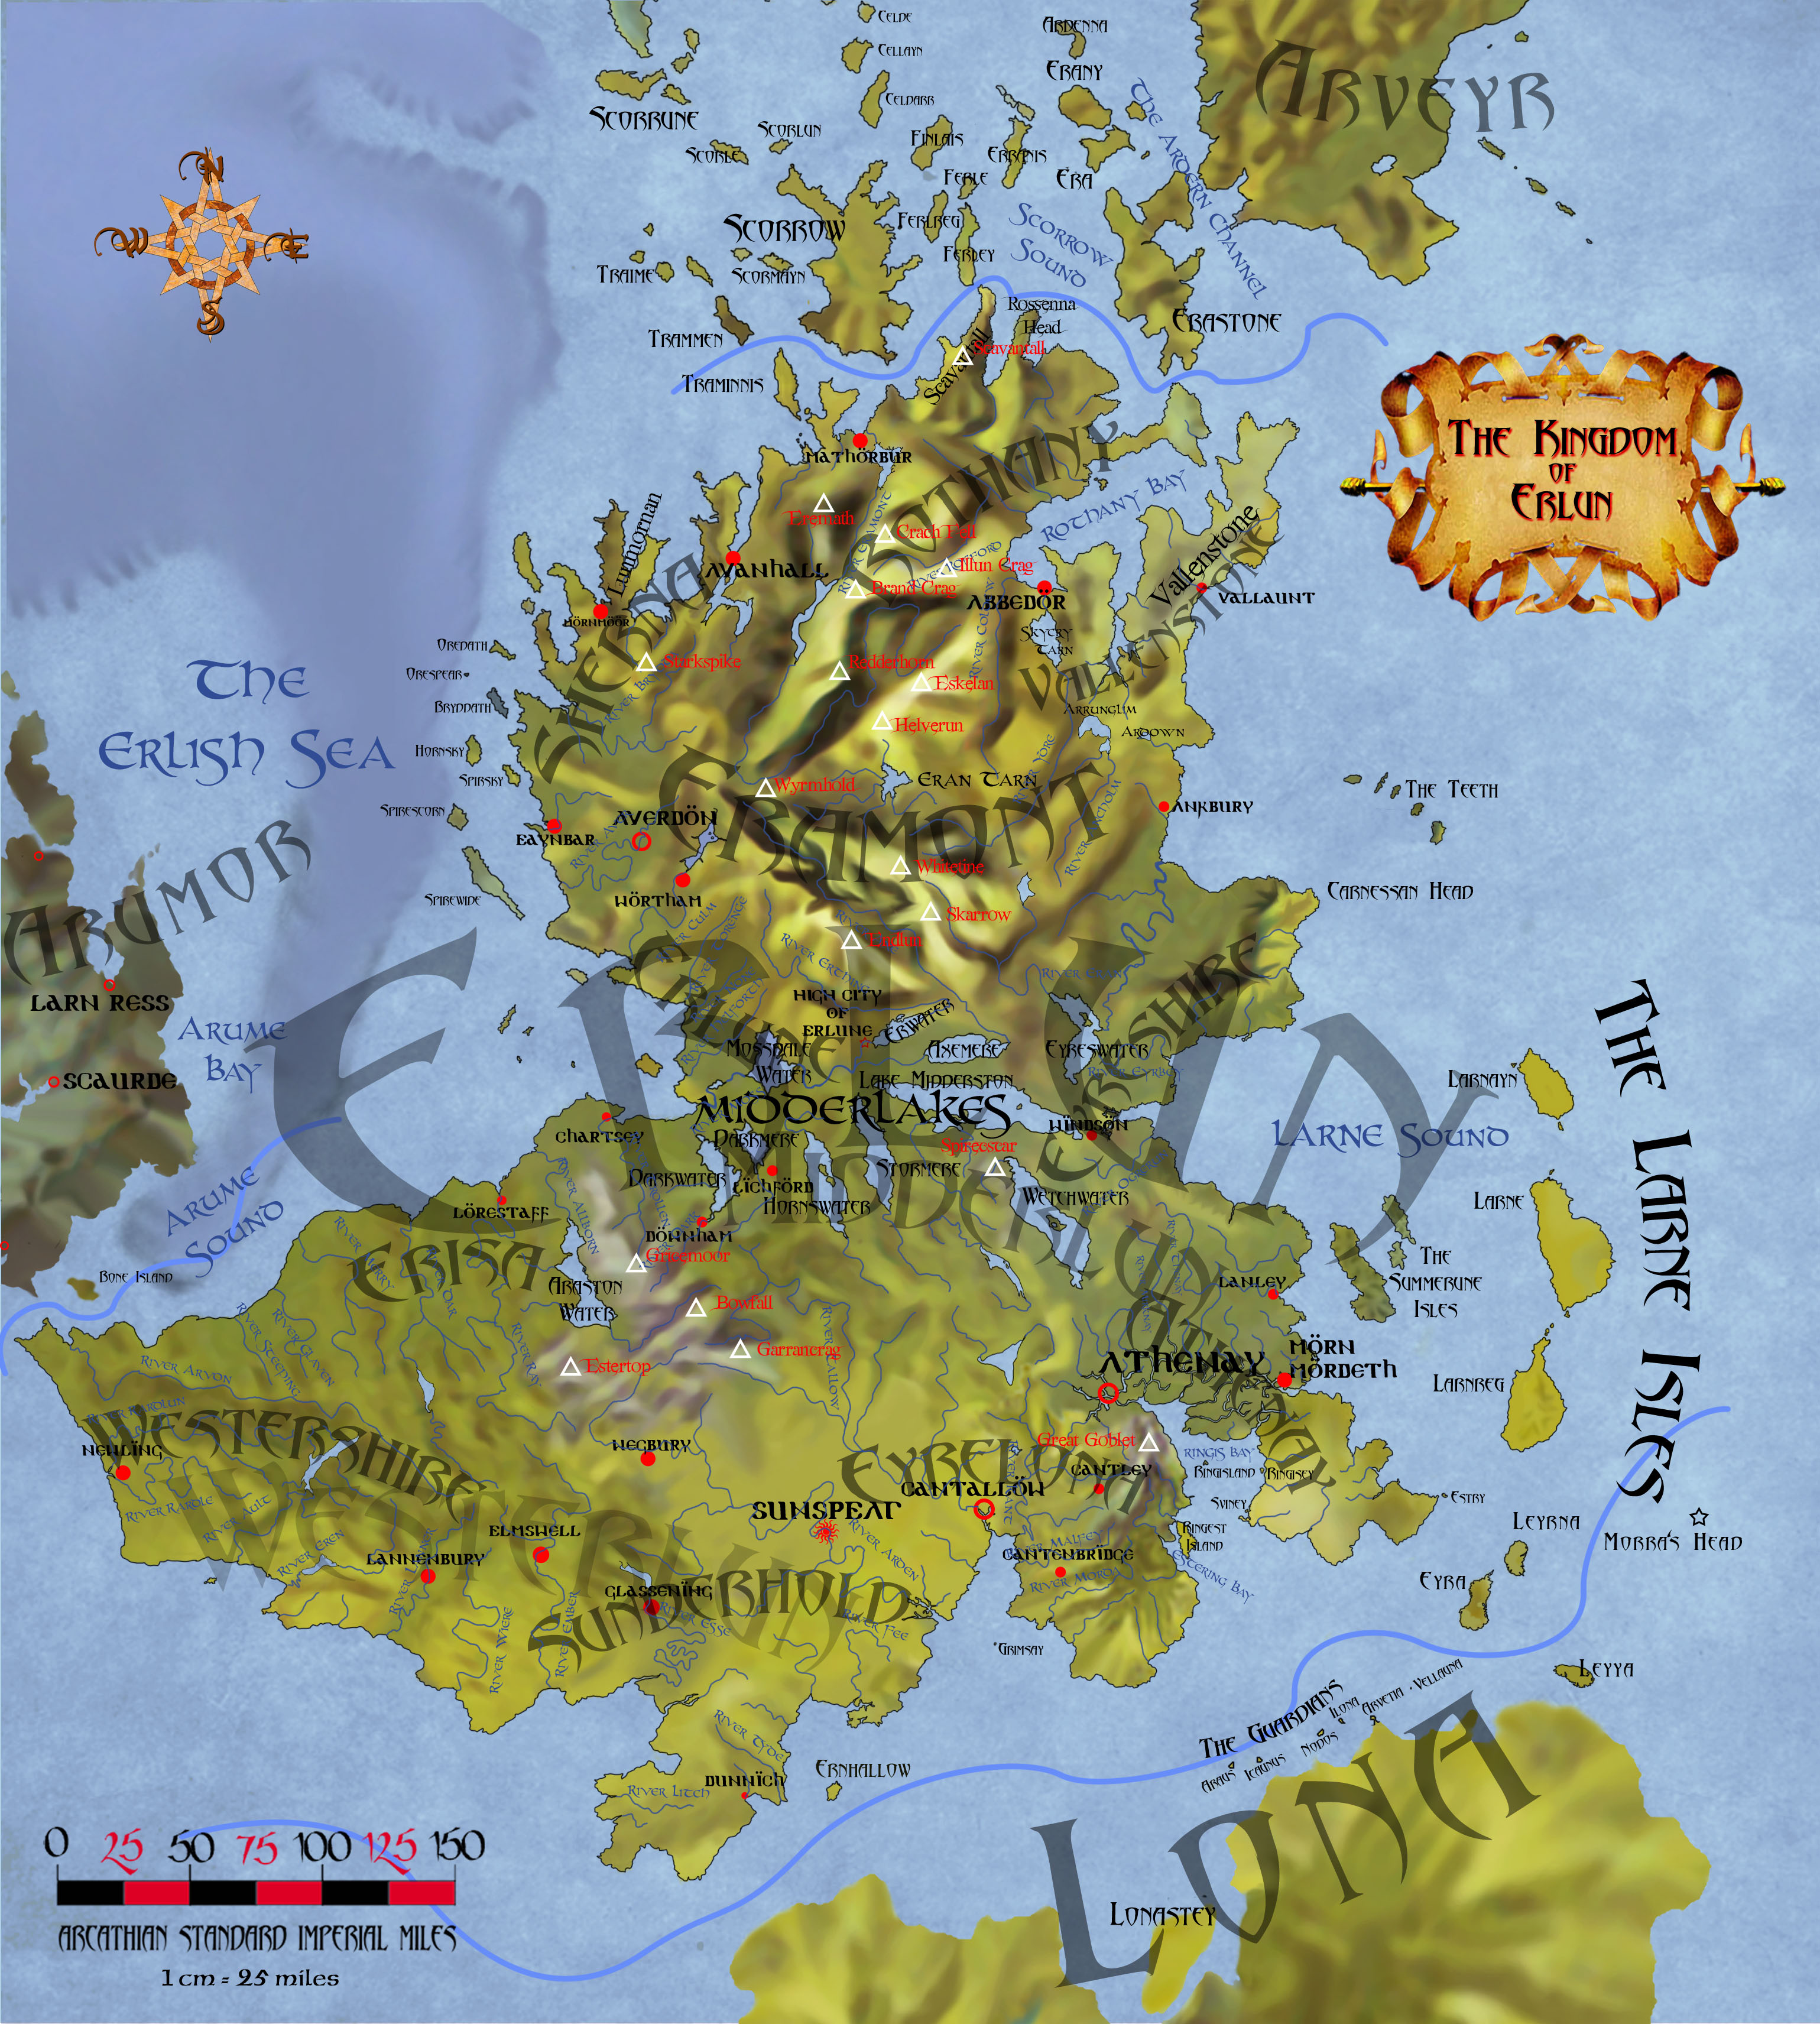 The kingdom of Erlun